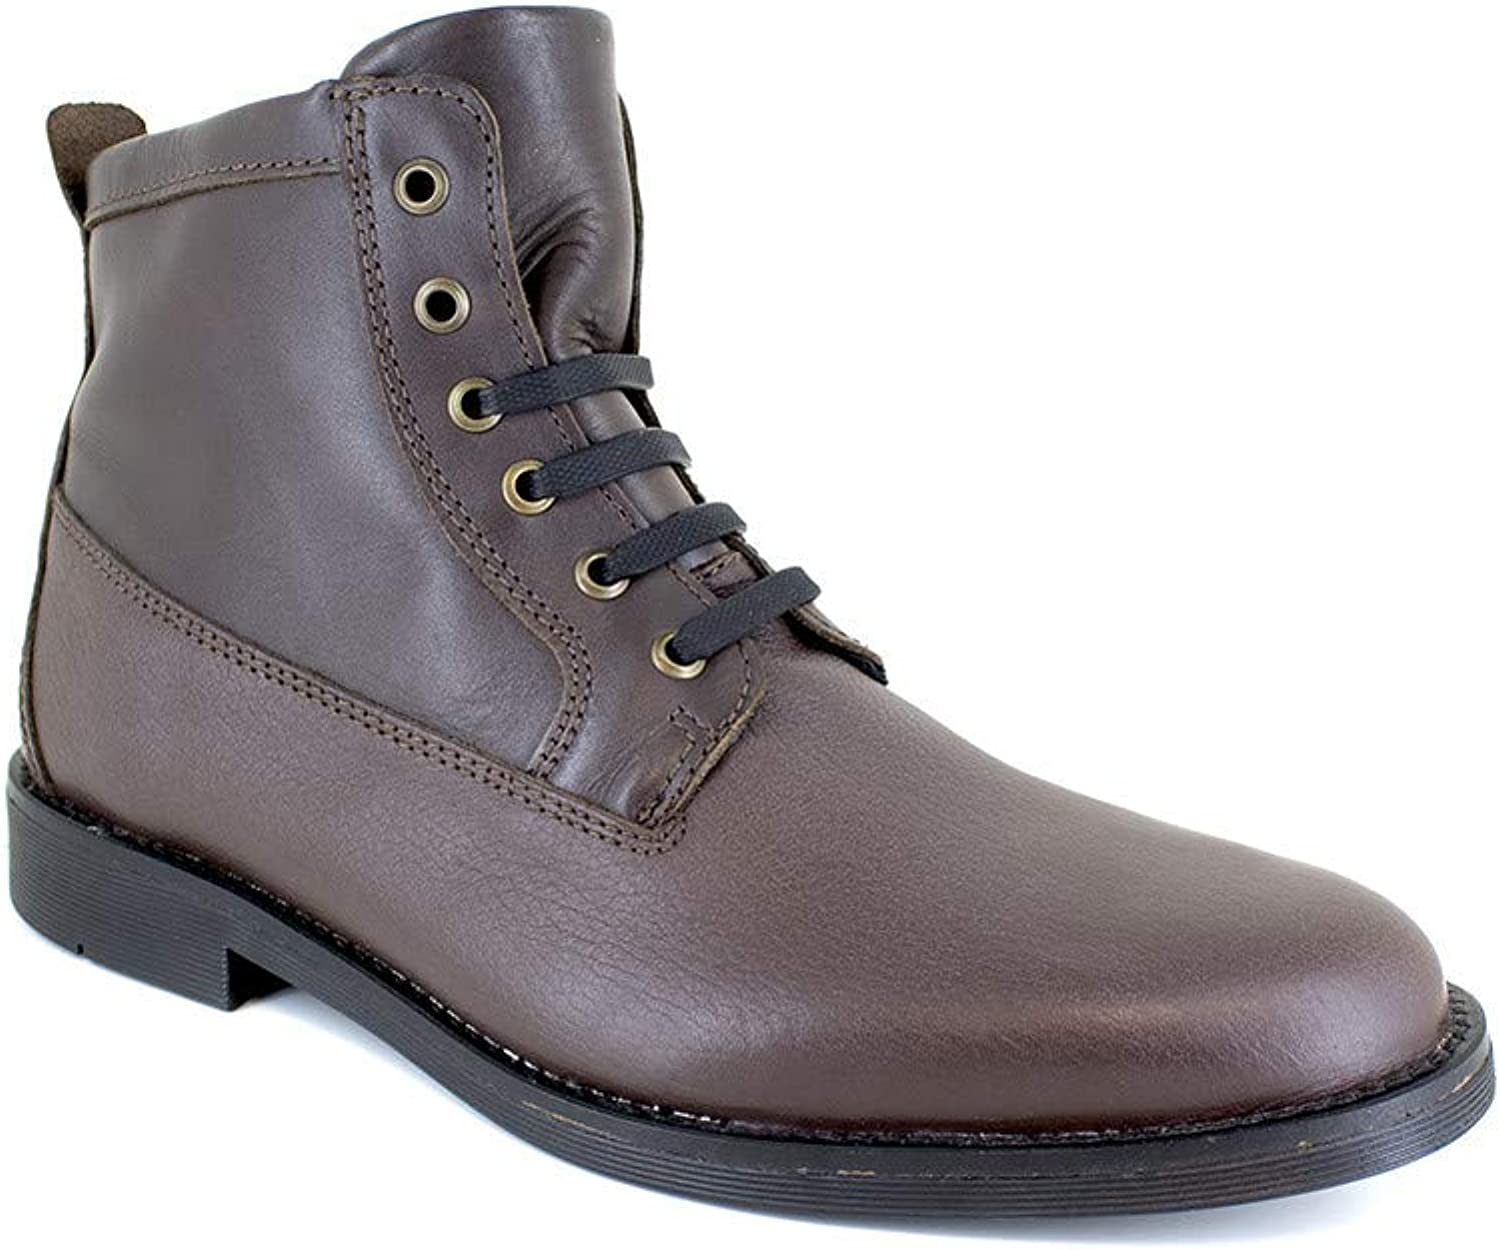 J.Bradford Low Boots Brown Leather JB-STRAWBER-111